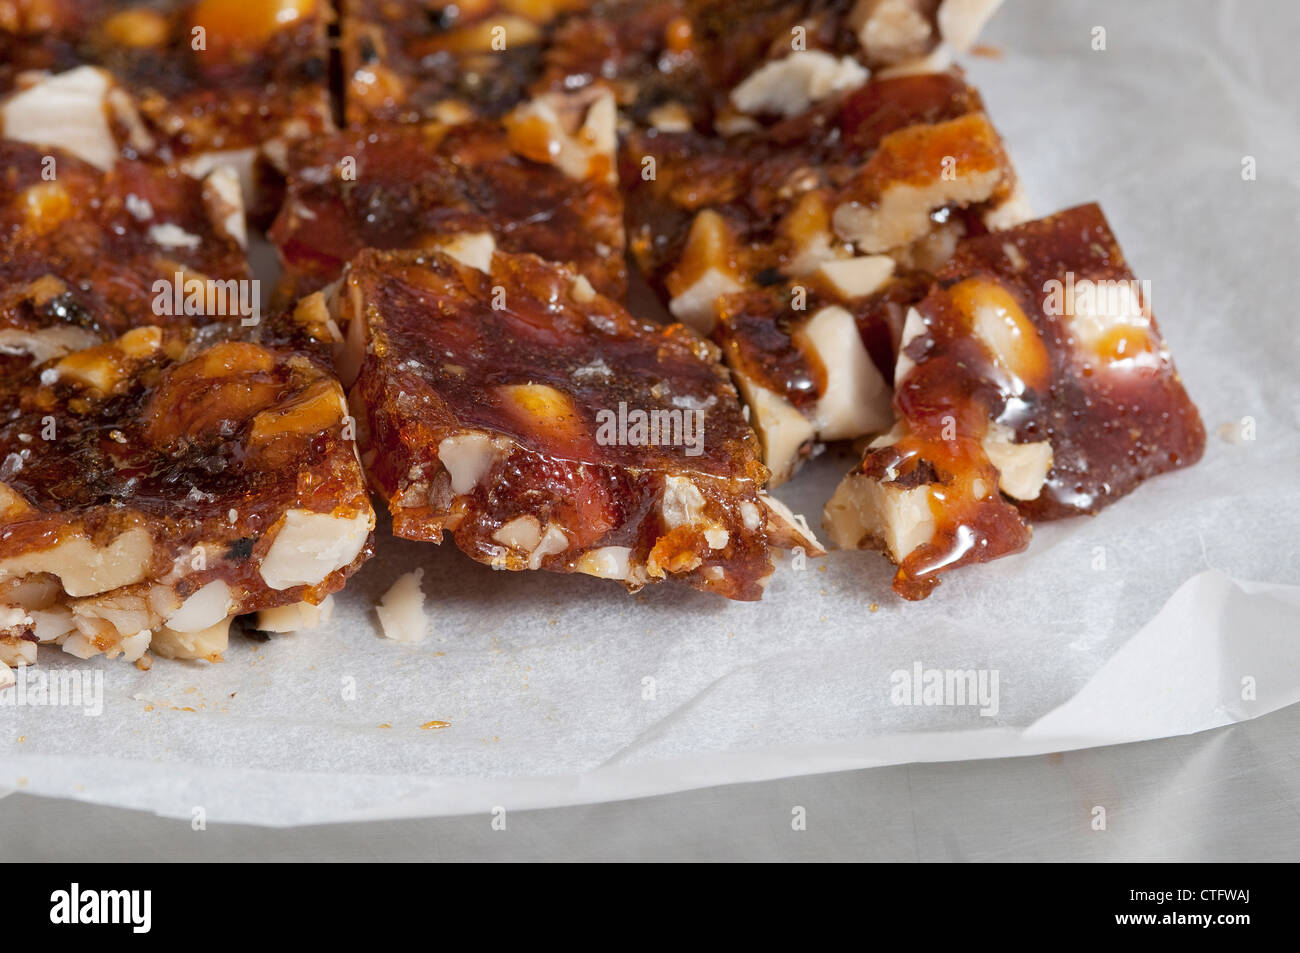 homemade toffee brittle - Stock Image